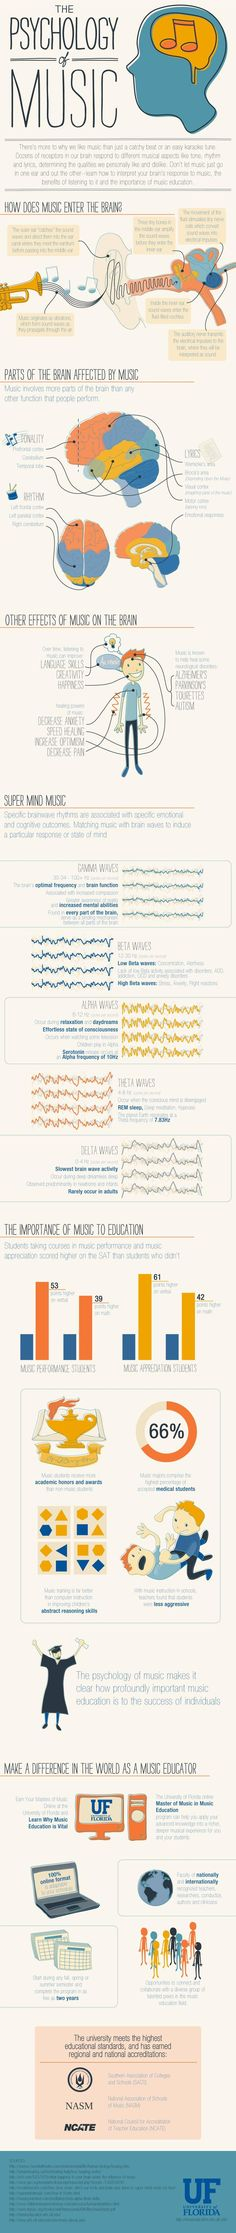 Τhe Psychology of Music Infographic - There's more to why we like music than just a catchy beat or an easy karaoke tune.